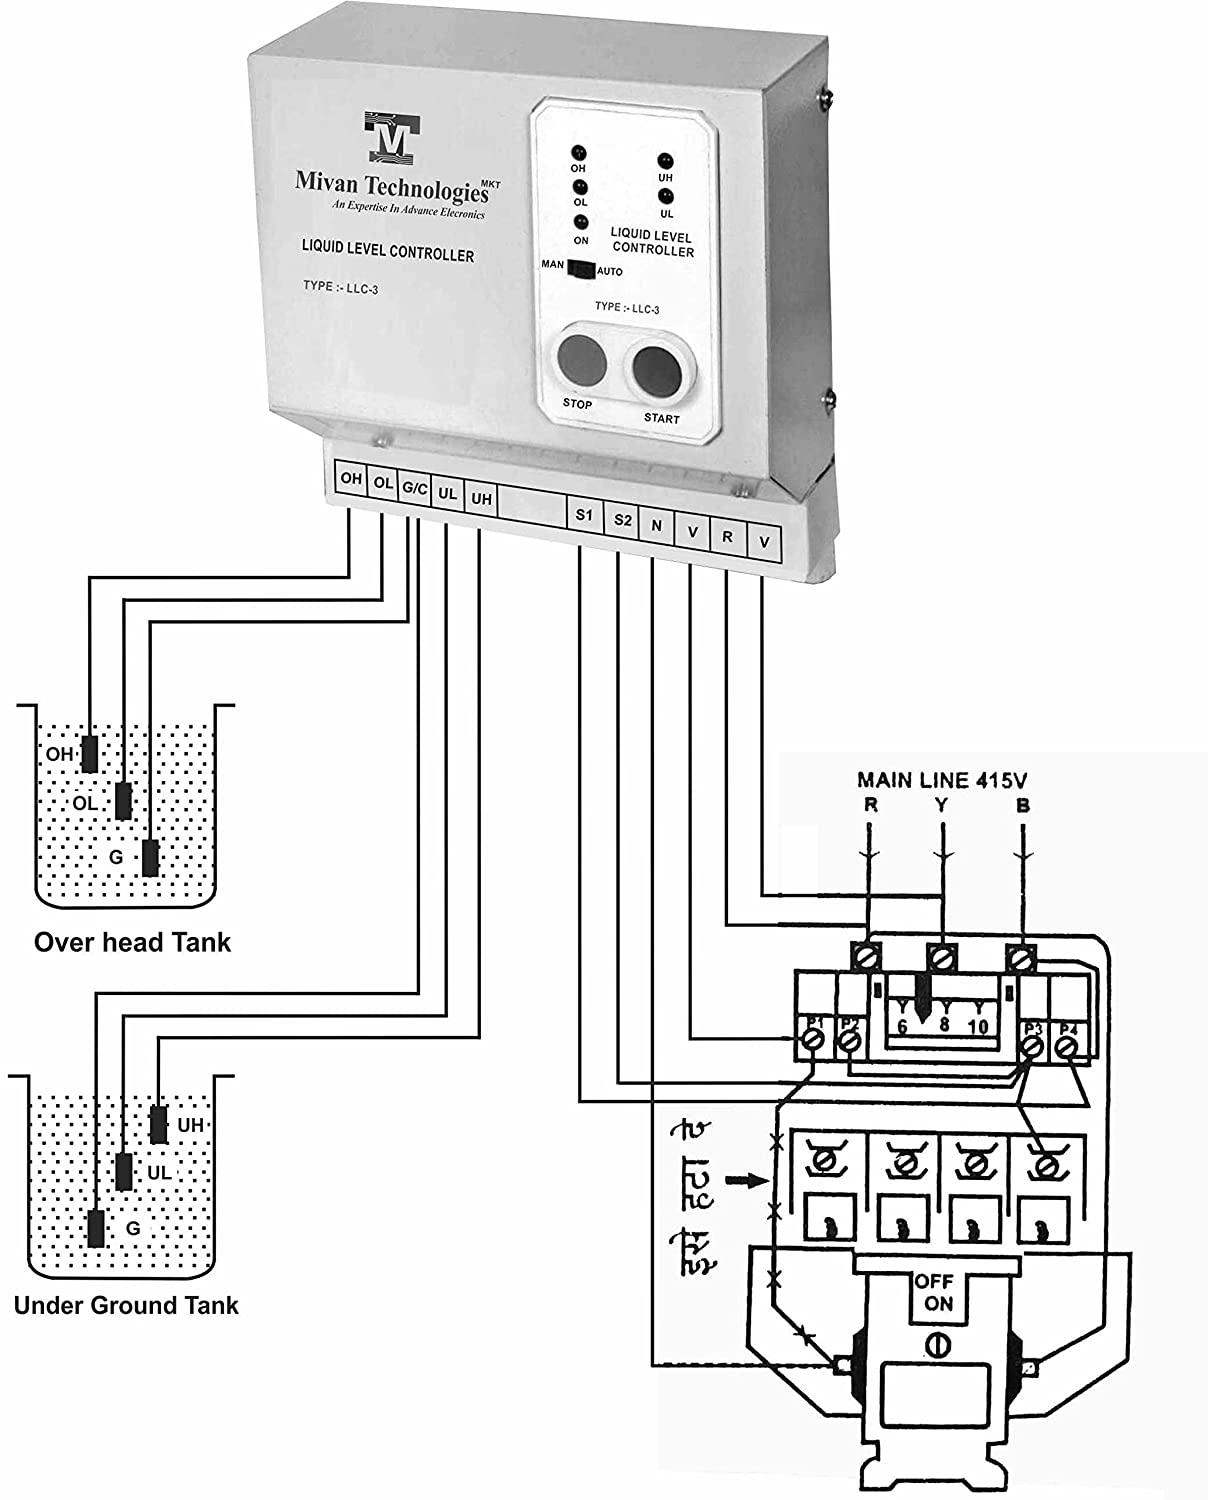 8163z8vhiuL._SL1500_ buy 3 phase fully automatic water level controller and water level gelco water level controller wiring diagram at n-0.co